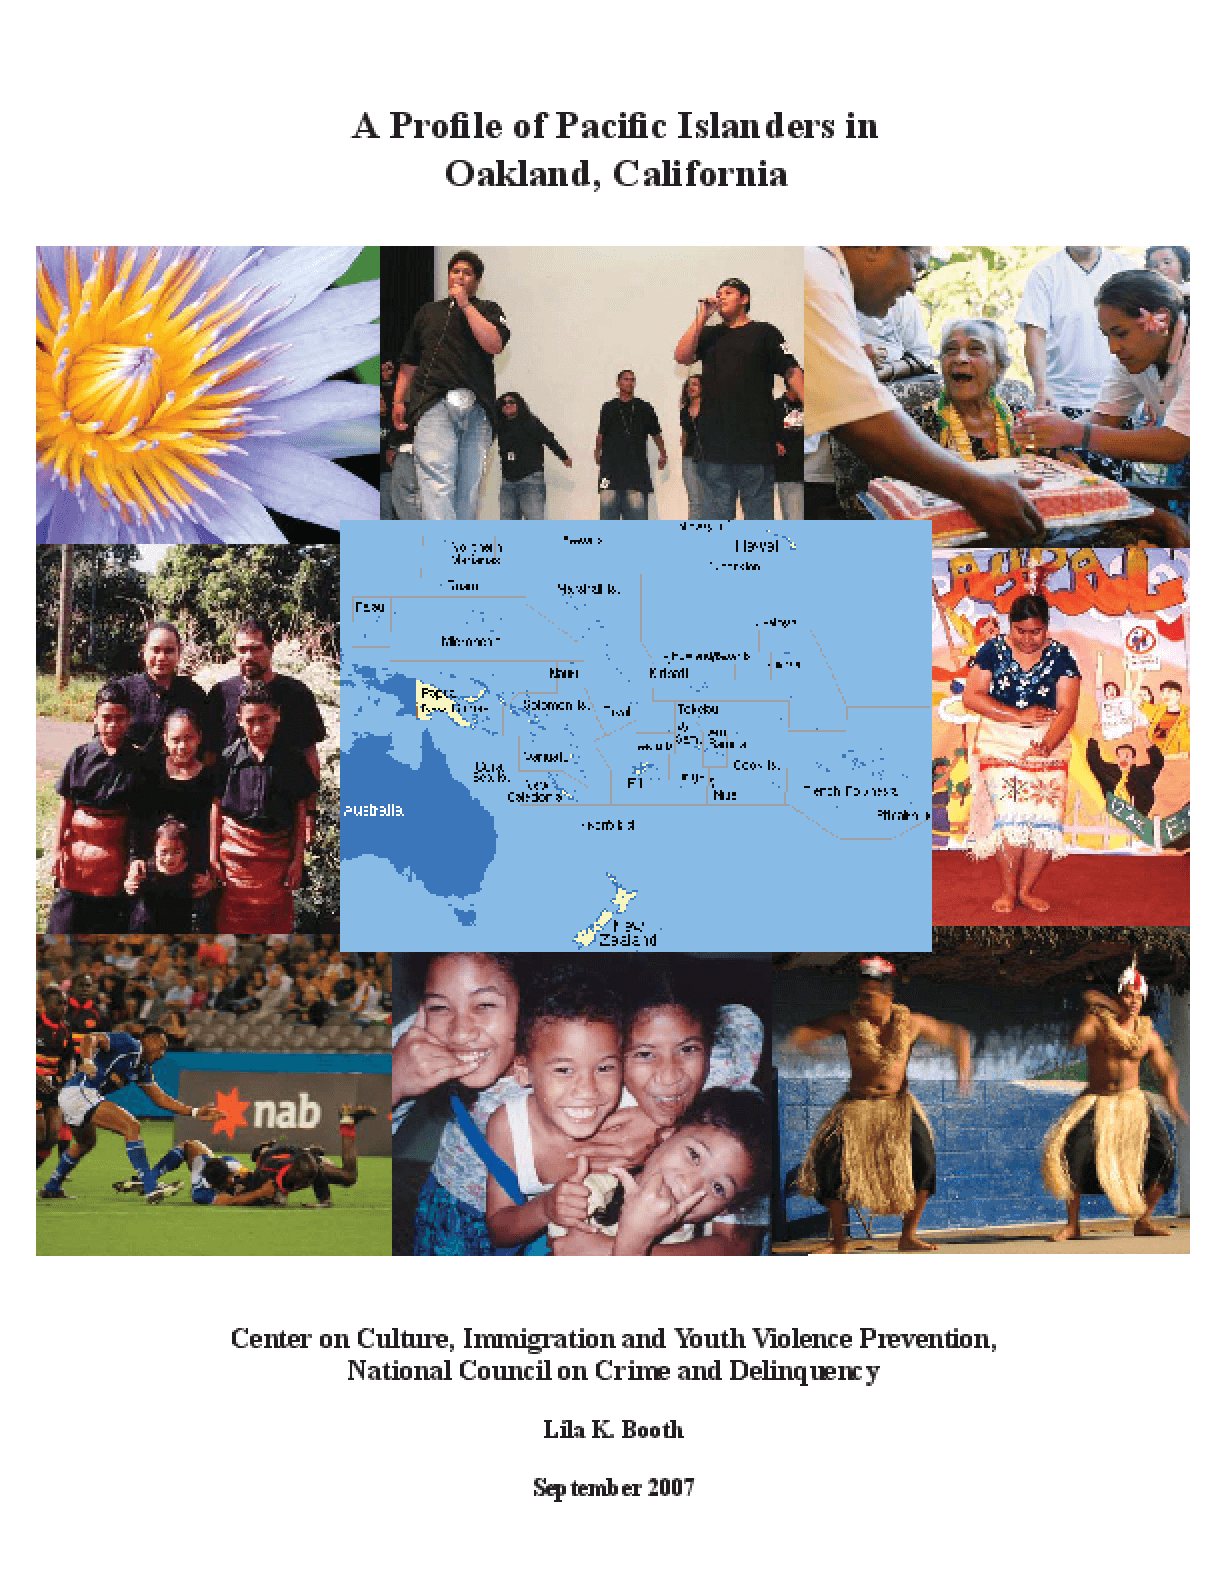 A Profile of Pacific Islanders in Oakland, California